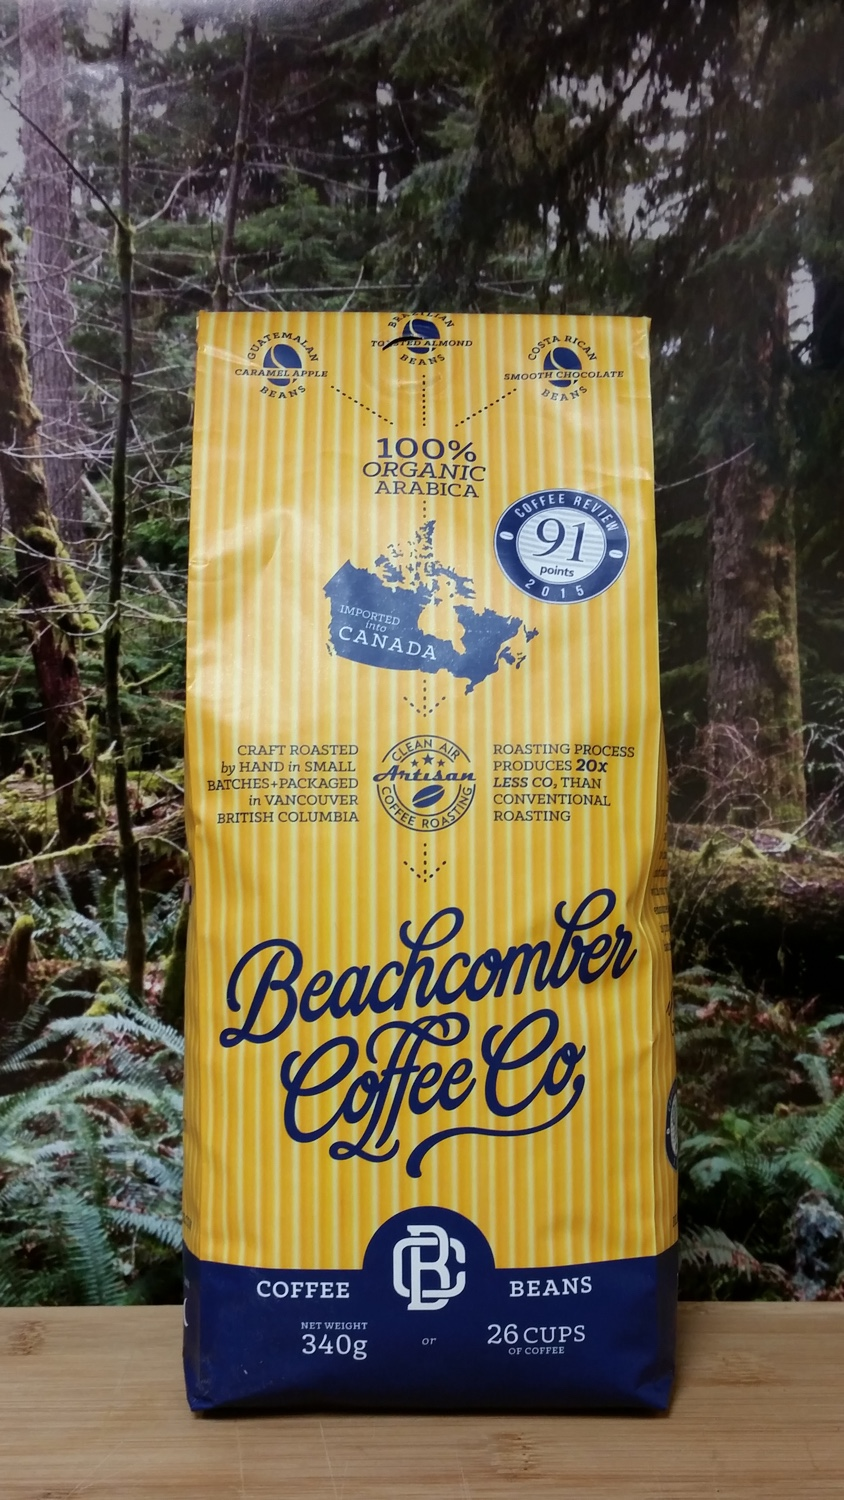 Beachcomber Coffee from Beachcomber Coffee Co